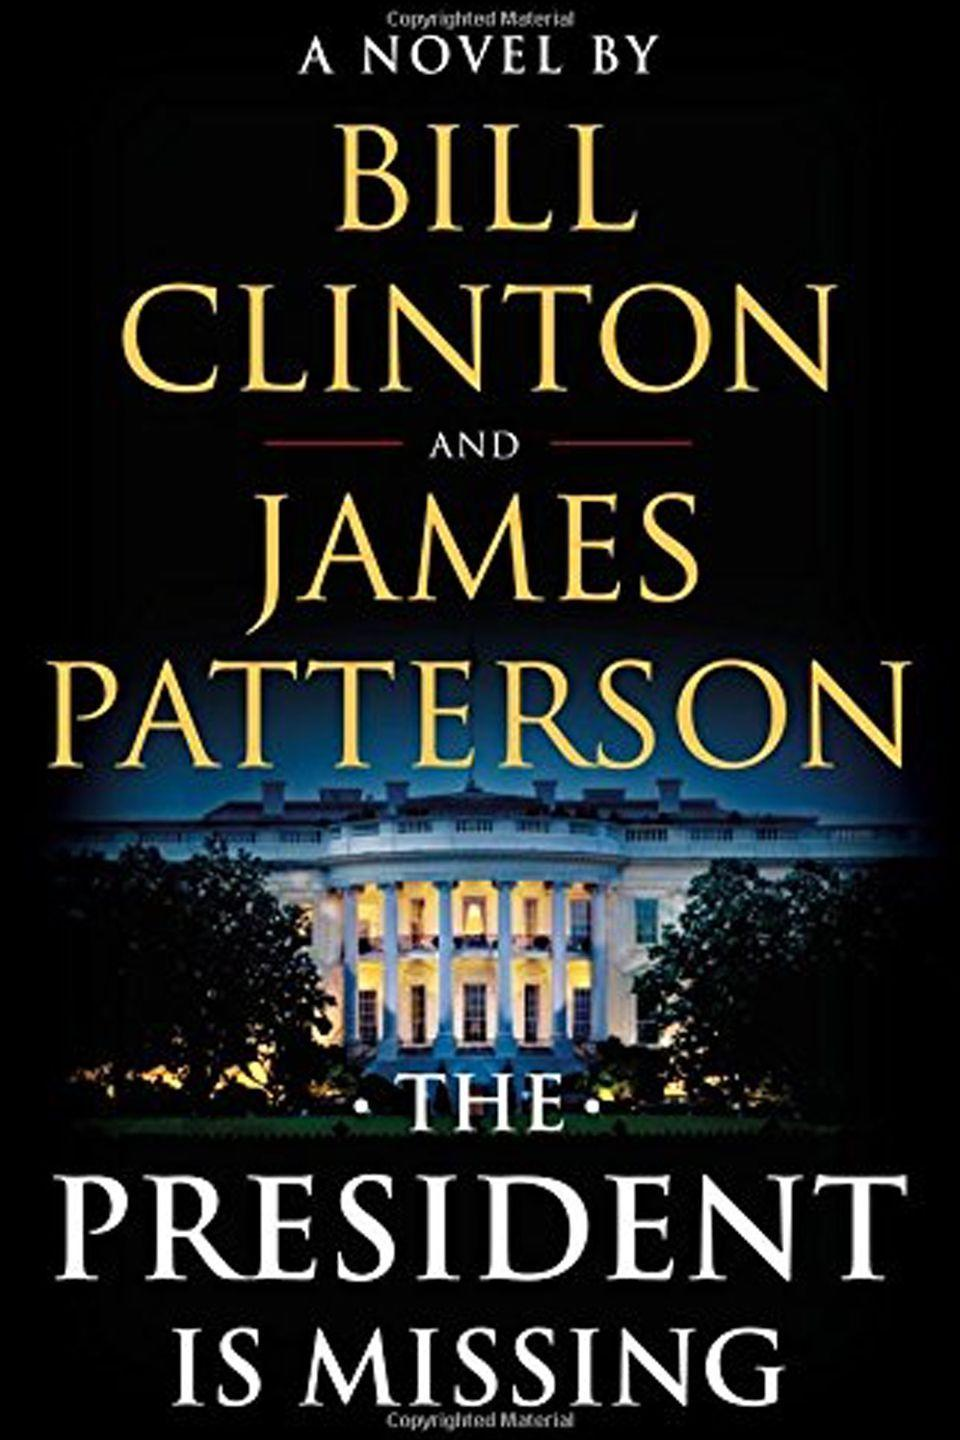 "<p>$21</p><p><a href=""https://www.amazon.com/President-Missing-Bill-Clinton/dp/0316412694/ref=sr_1_1_twi_har_2"" rel=""nofollow noopener"" target=""_blank"" data-ylk=""slk:BUY NOW"" class=""link rapid-noclick-resp"">BUY NOW</a></p><p>POTUS-turned-novelist? Yup. Bill Clinton teamed up with James Patterson to write a thriller-mystery exploring what happens when President Jonathan Lincoln Duncan disappears - all while he's in the dramatic process of being impeached<br></p>"